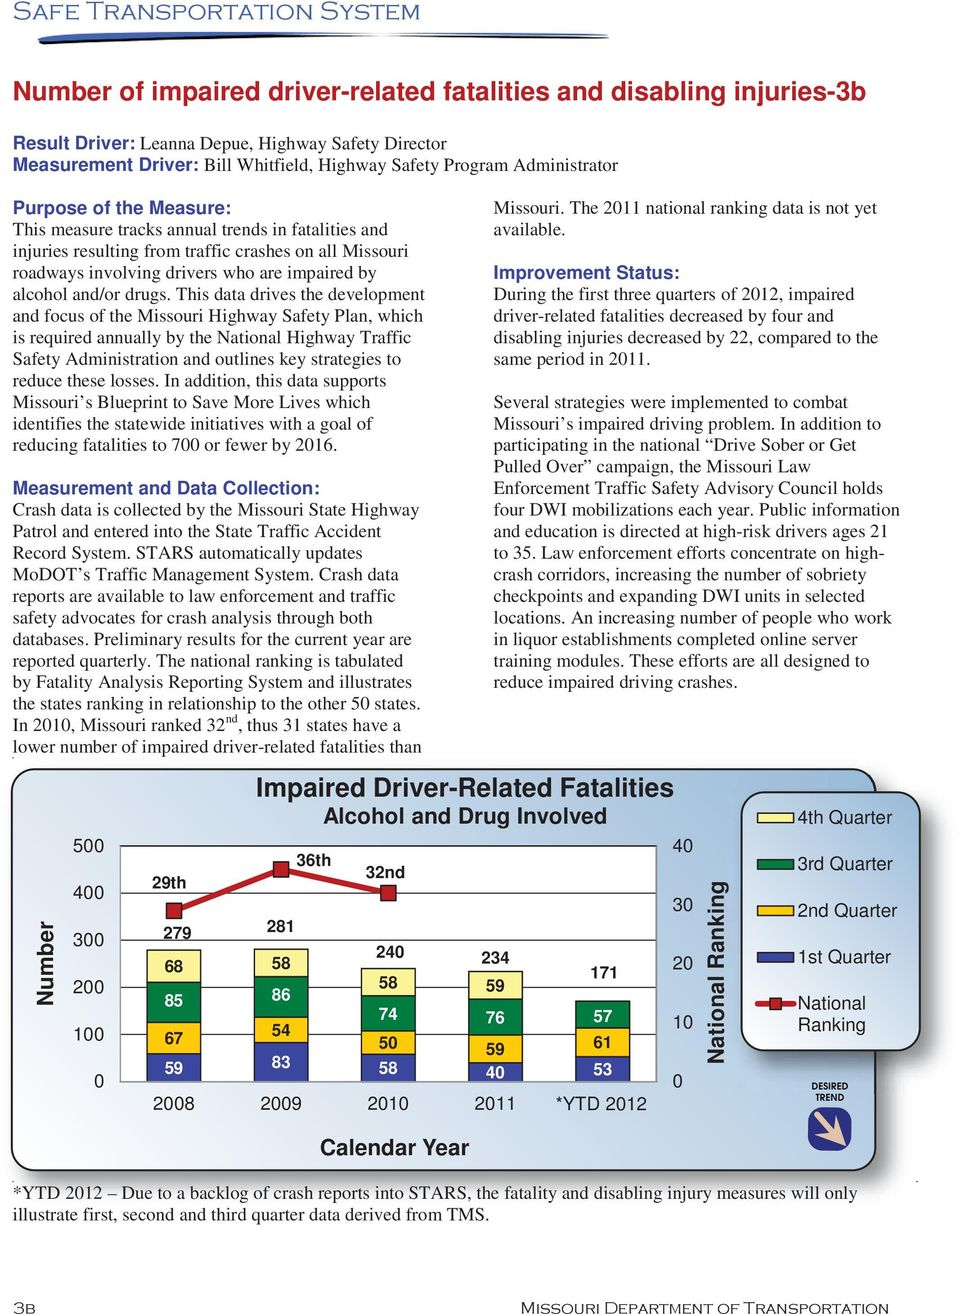 This data drives the development and focus of the Missouri Highway Safety Plan, which is required annually by the National Highway Traffic Safety Administration and outlines key strategies to reduce